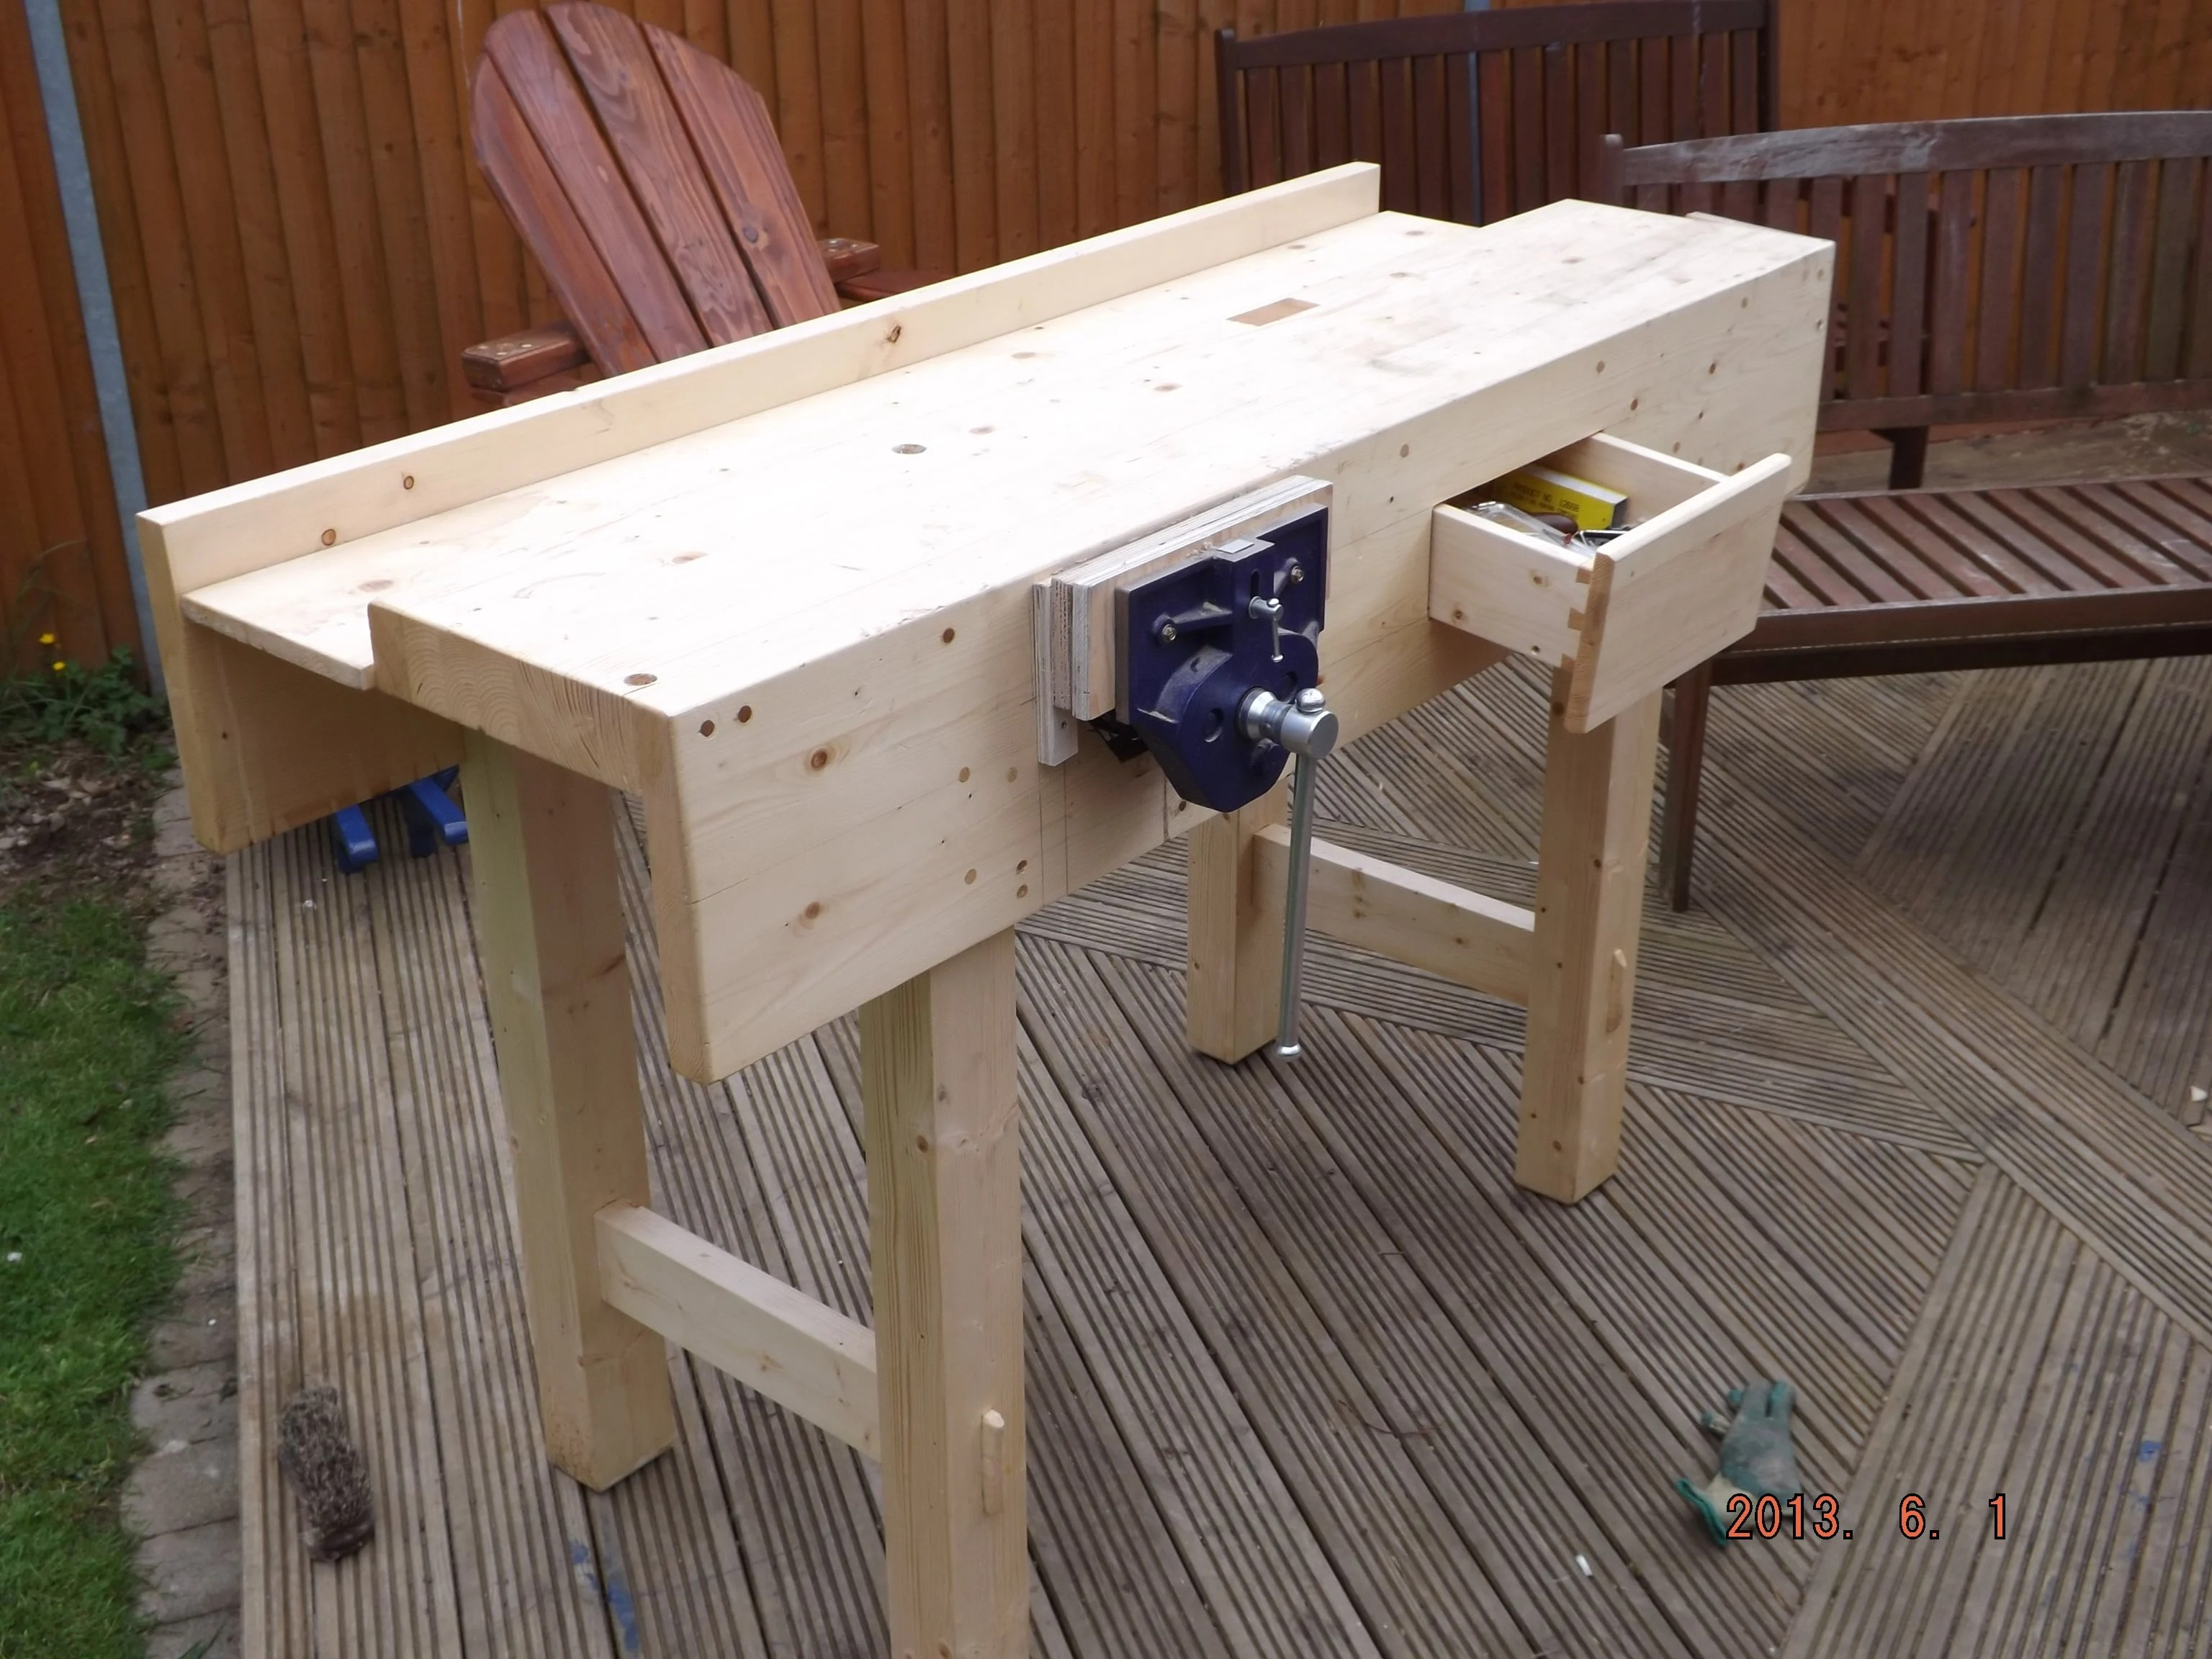 Workbench by david o'sullivan